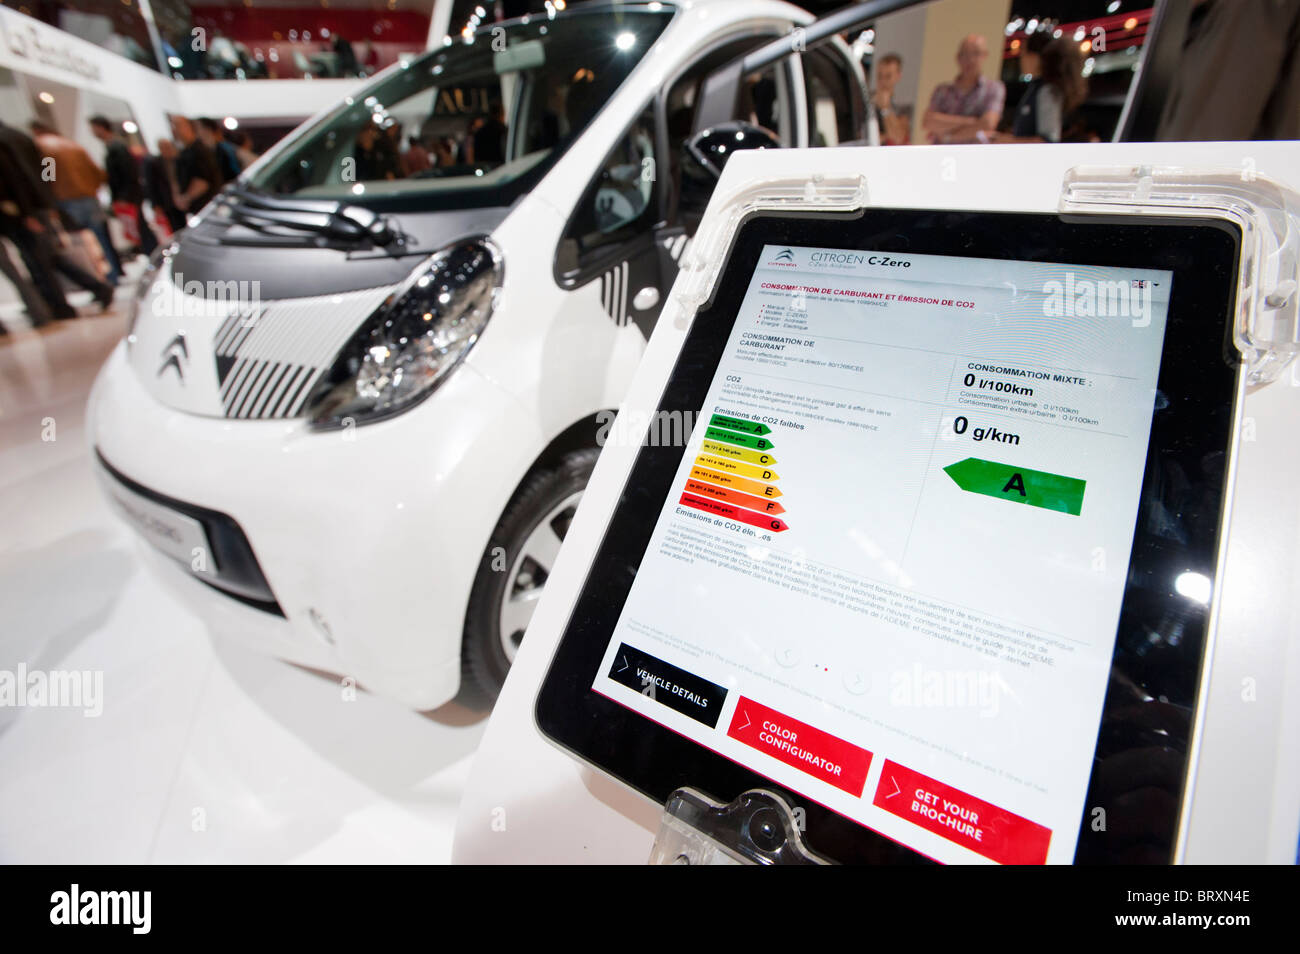 Technical information display showing zero C02 emissions from Citroen ION electric car at Paris Motor Show 2010 Stock Photo